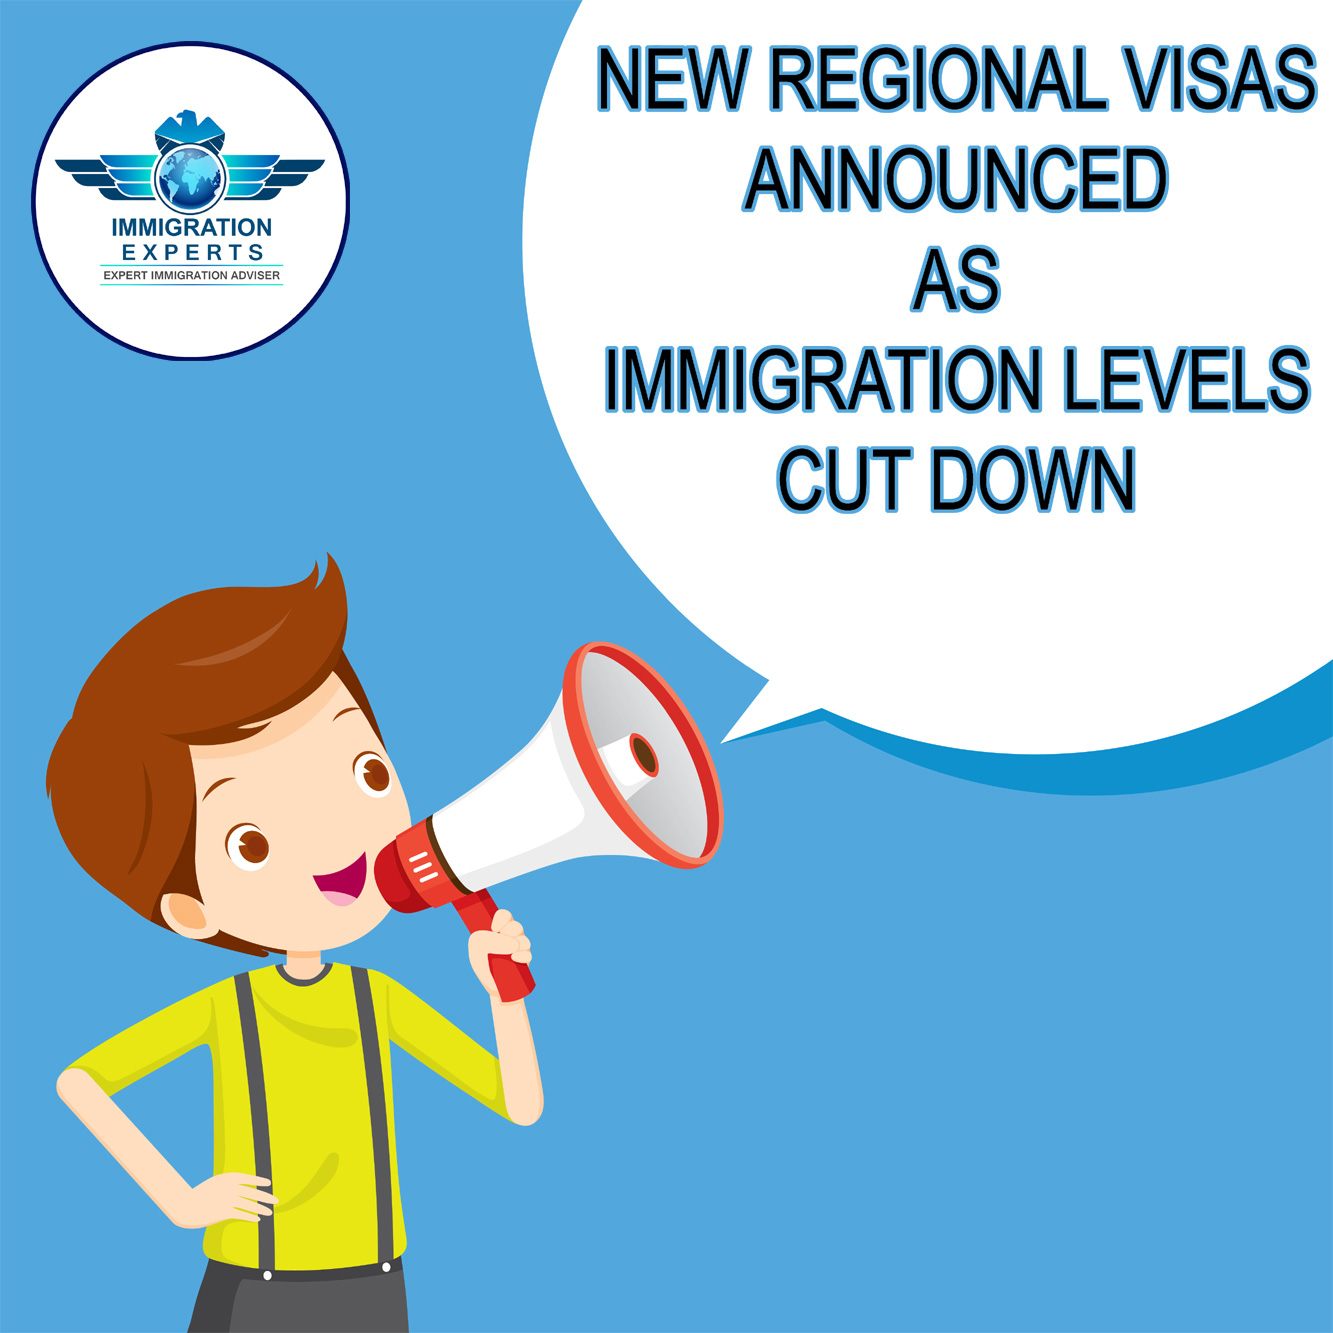 New regional visas announced as immigration levels cut down